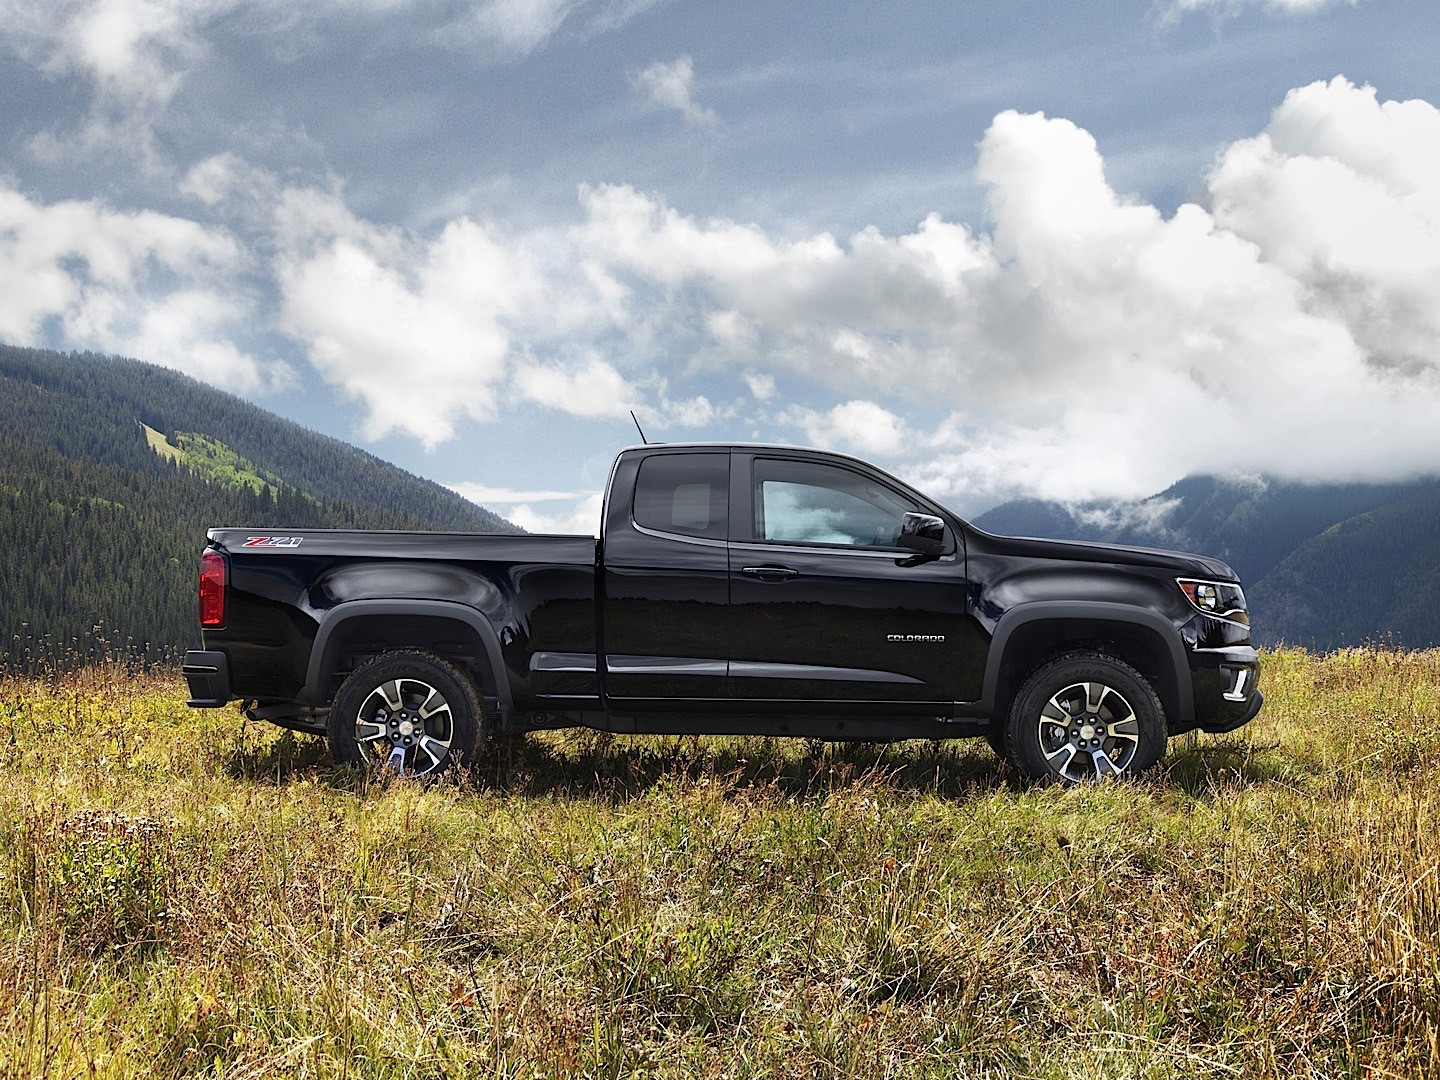 2019 Chevrolet Colorado Extended Cab photo - 5